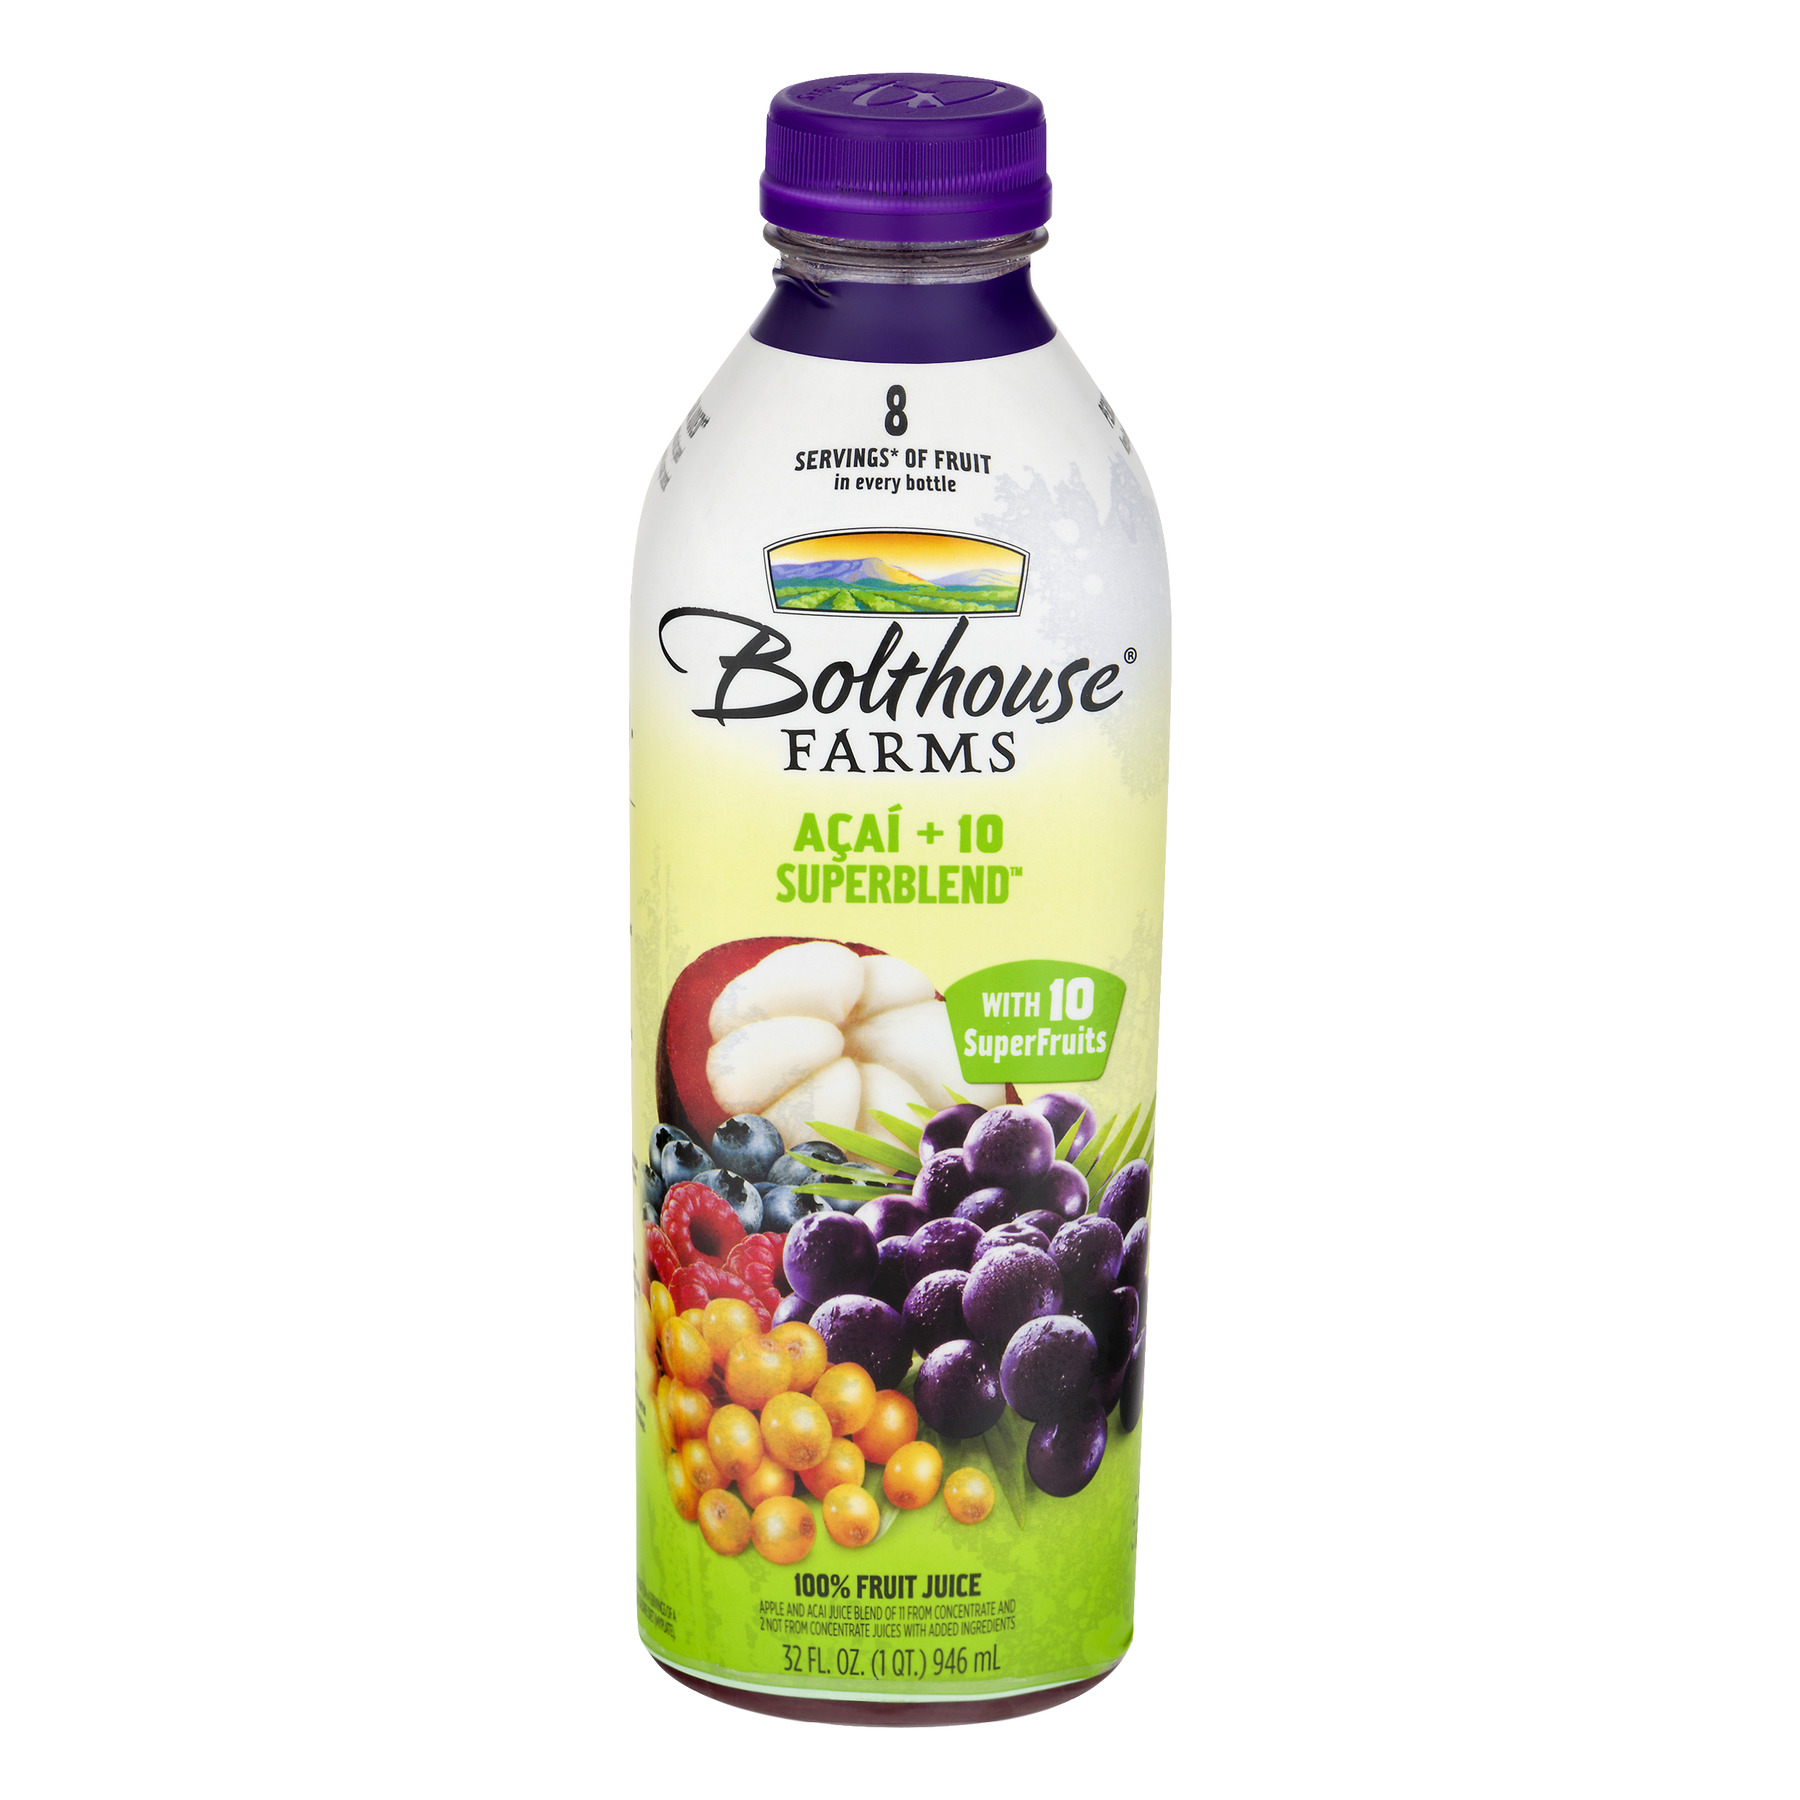 Bolthouse Farms Fruit Juice Acai + 10 Superblend, 32.0 FL OZ